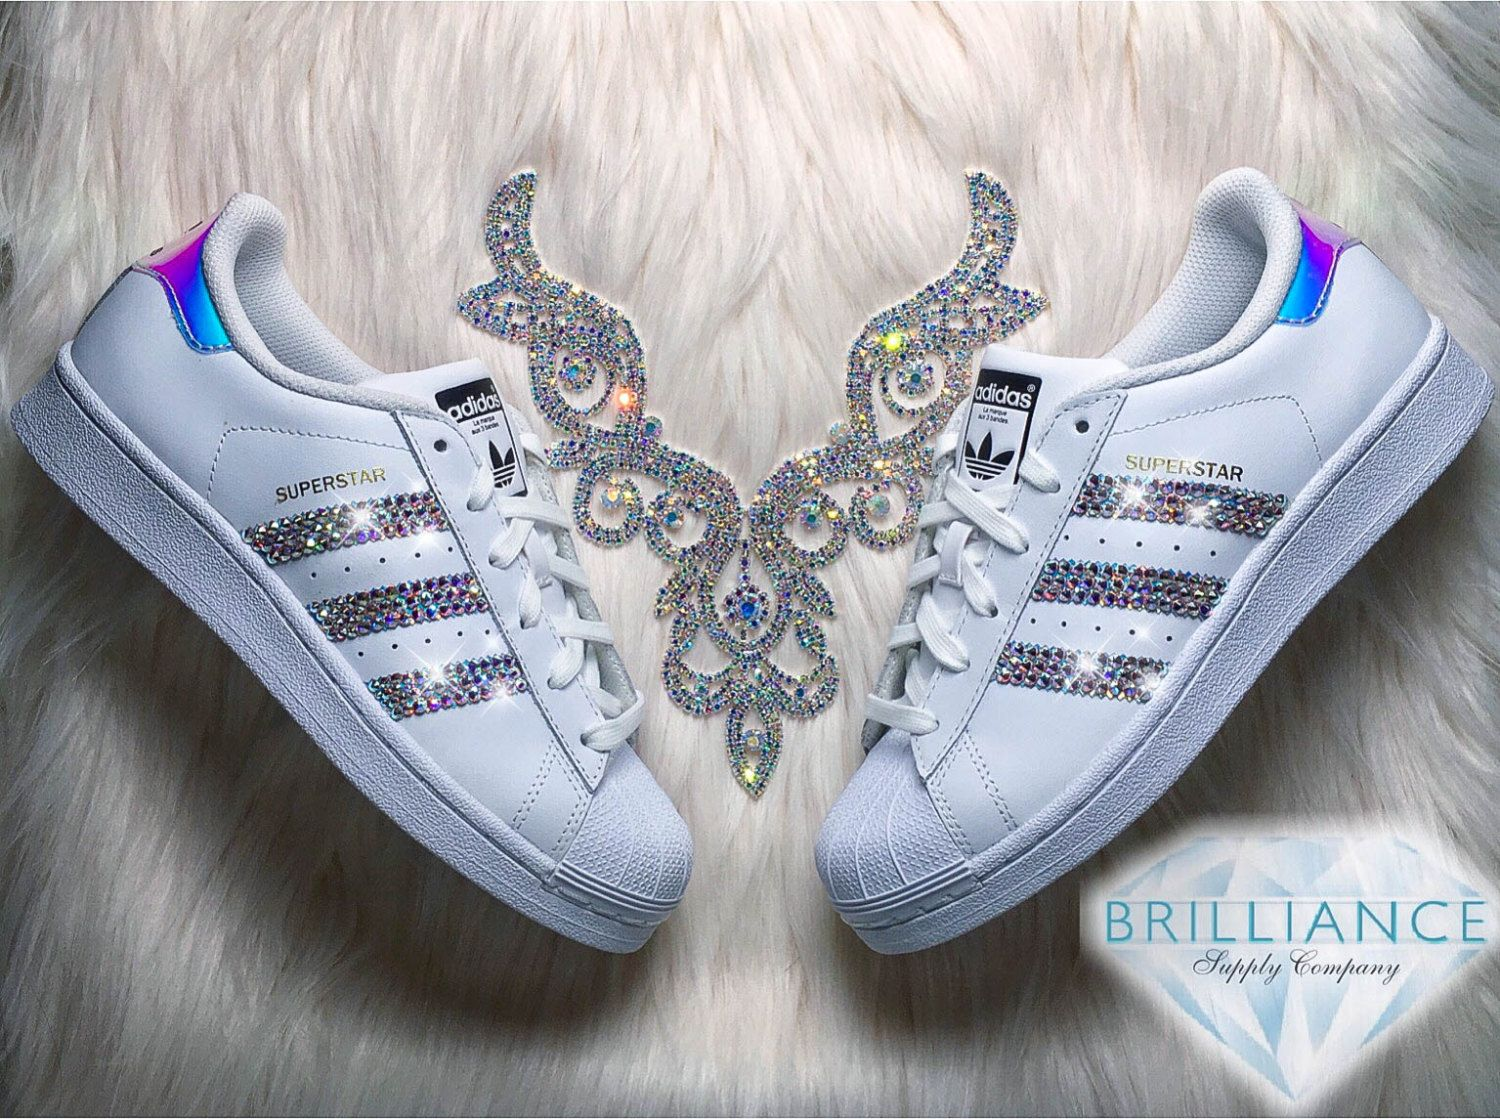 LumySims  Semller Adidas Superstar for Toddlers   Sims 4 Downloads Adidas  Tubular Radial K White and holographic adidas tubular. Brand new  never  worn. 9cc35f539